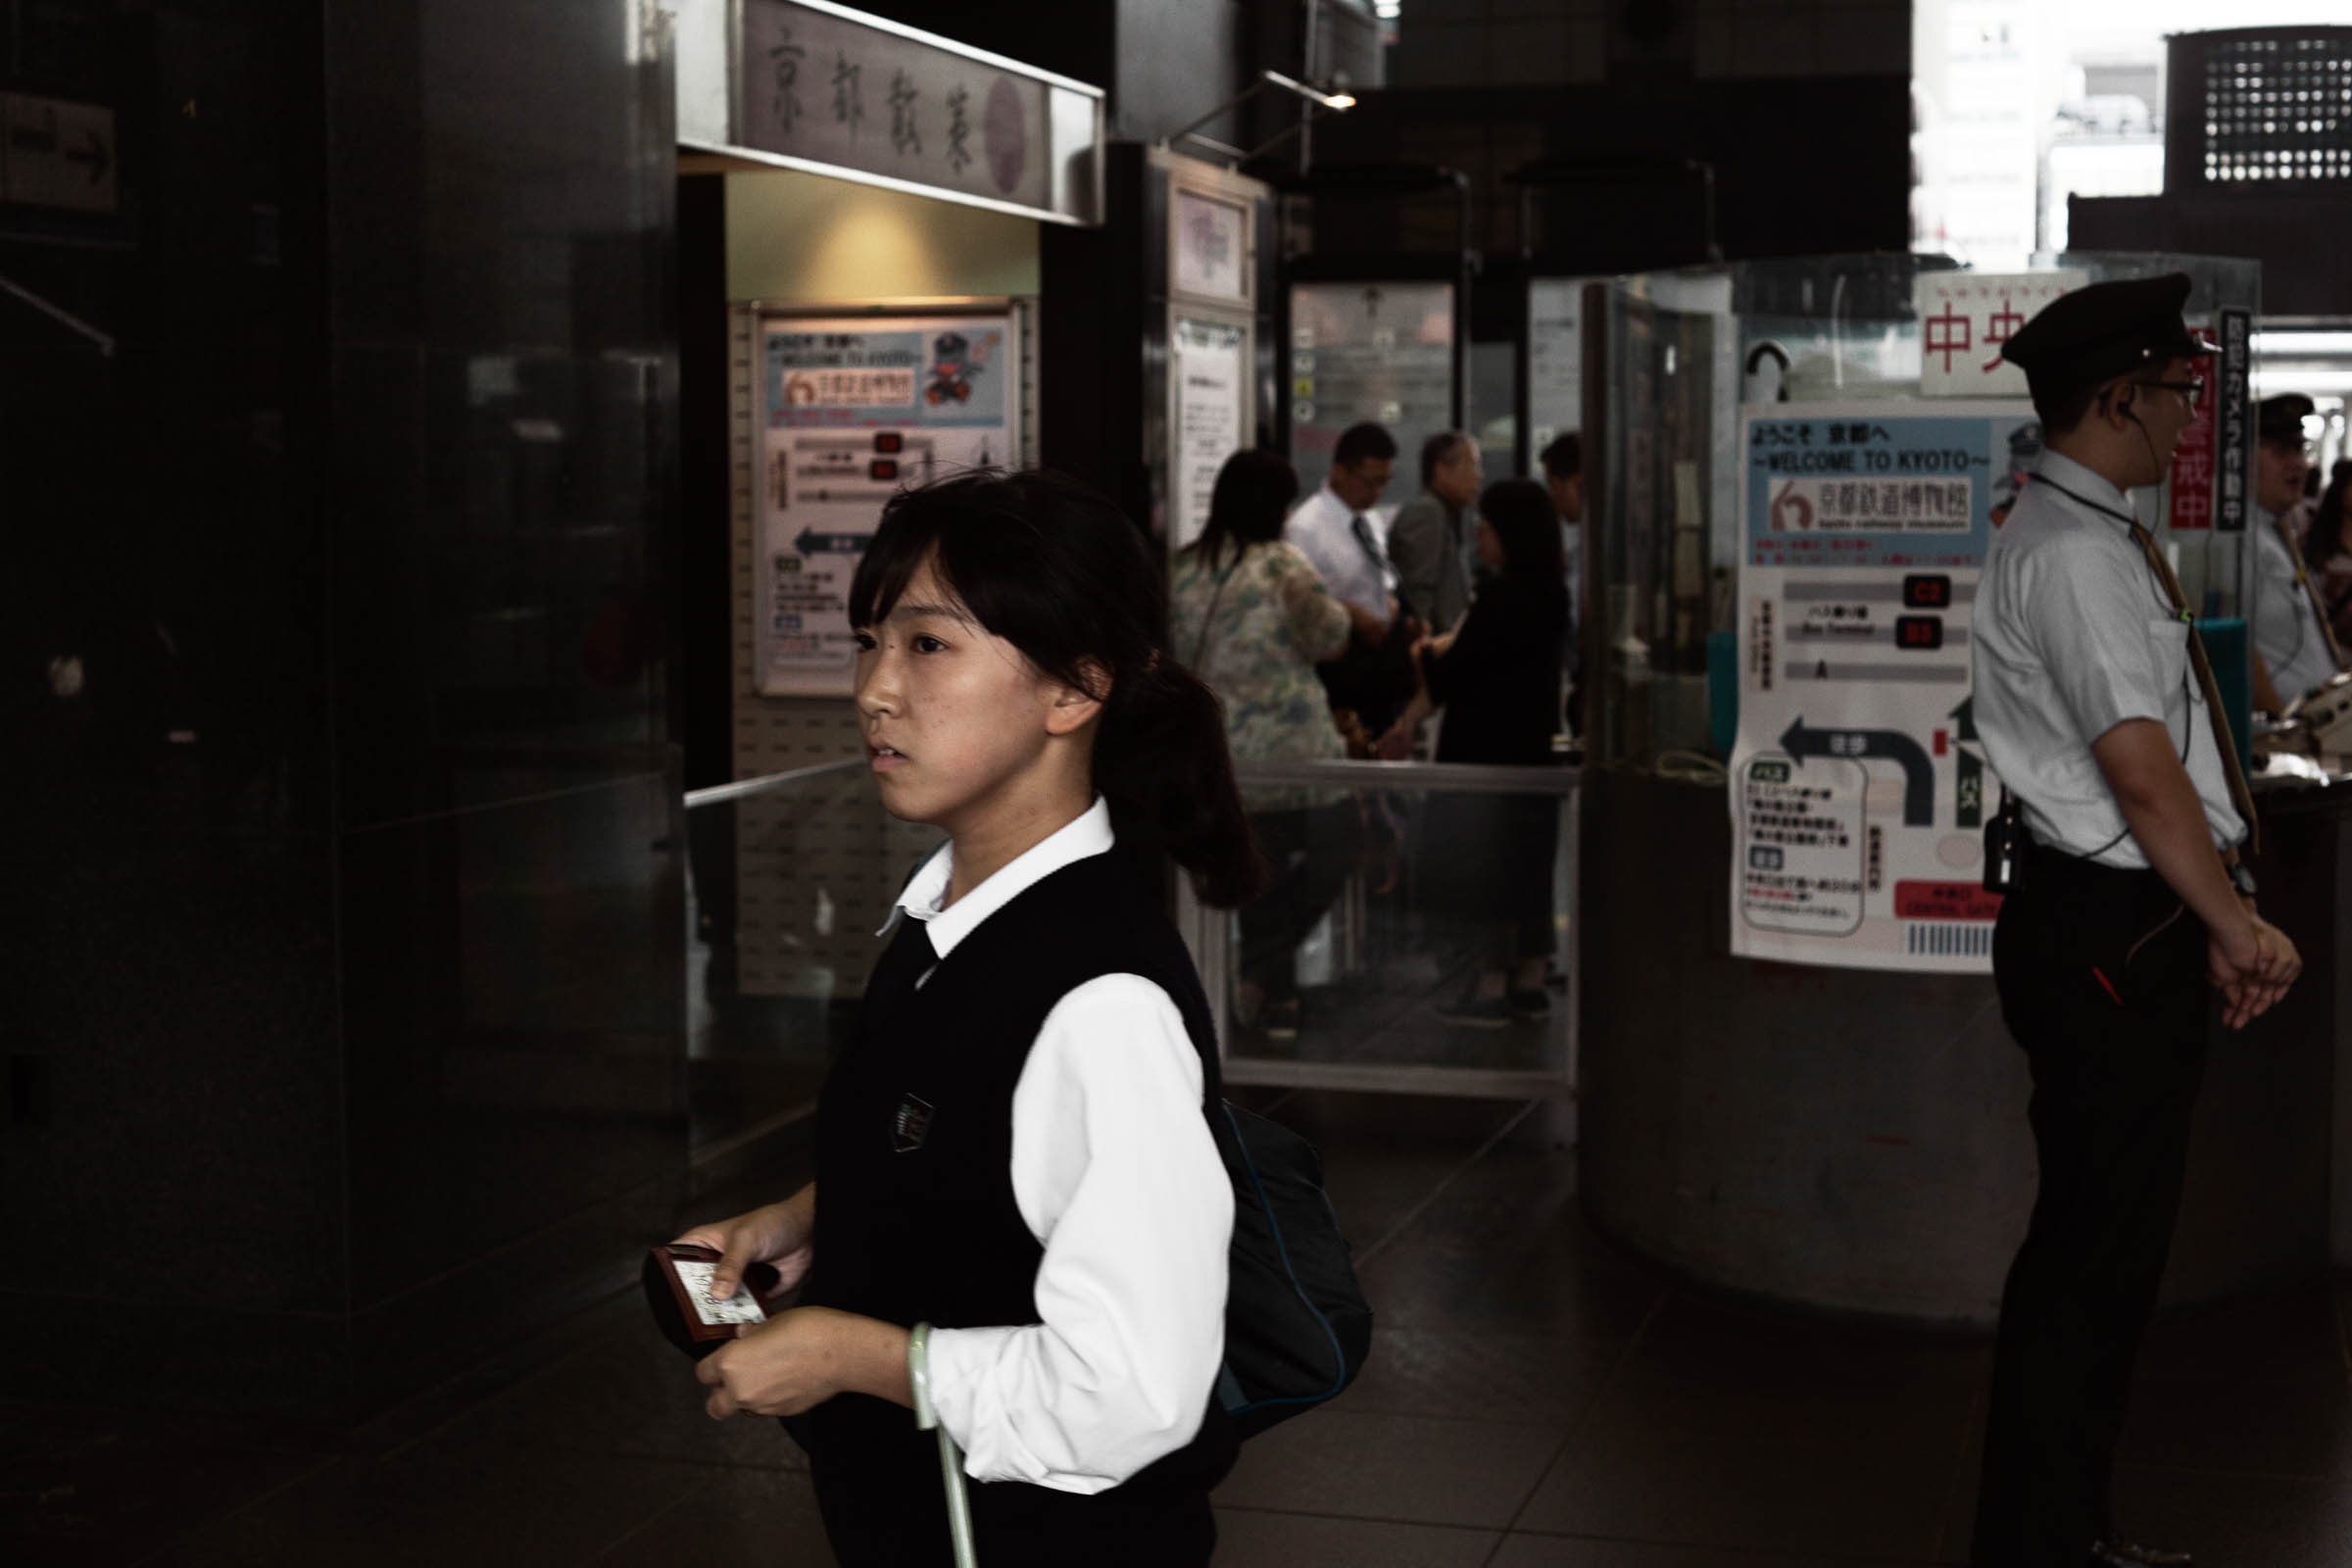 Chacon Images_Japan_Web-56.jpg